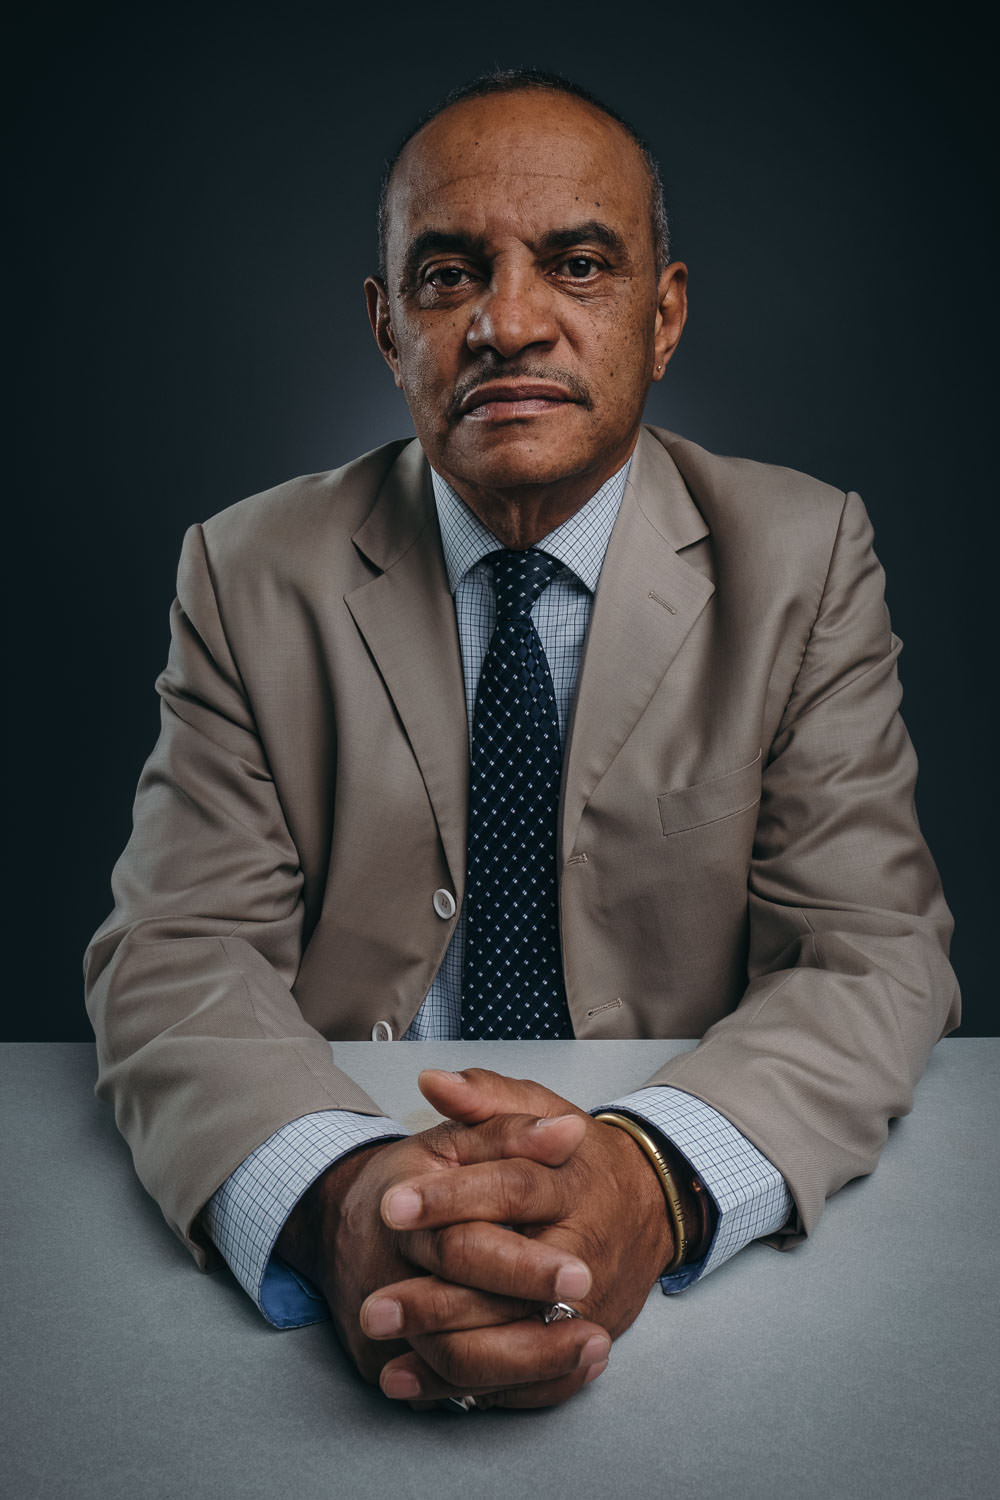 serious portrait of African-American man sitting behind the table